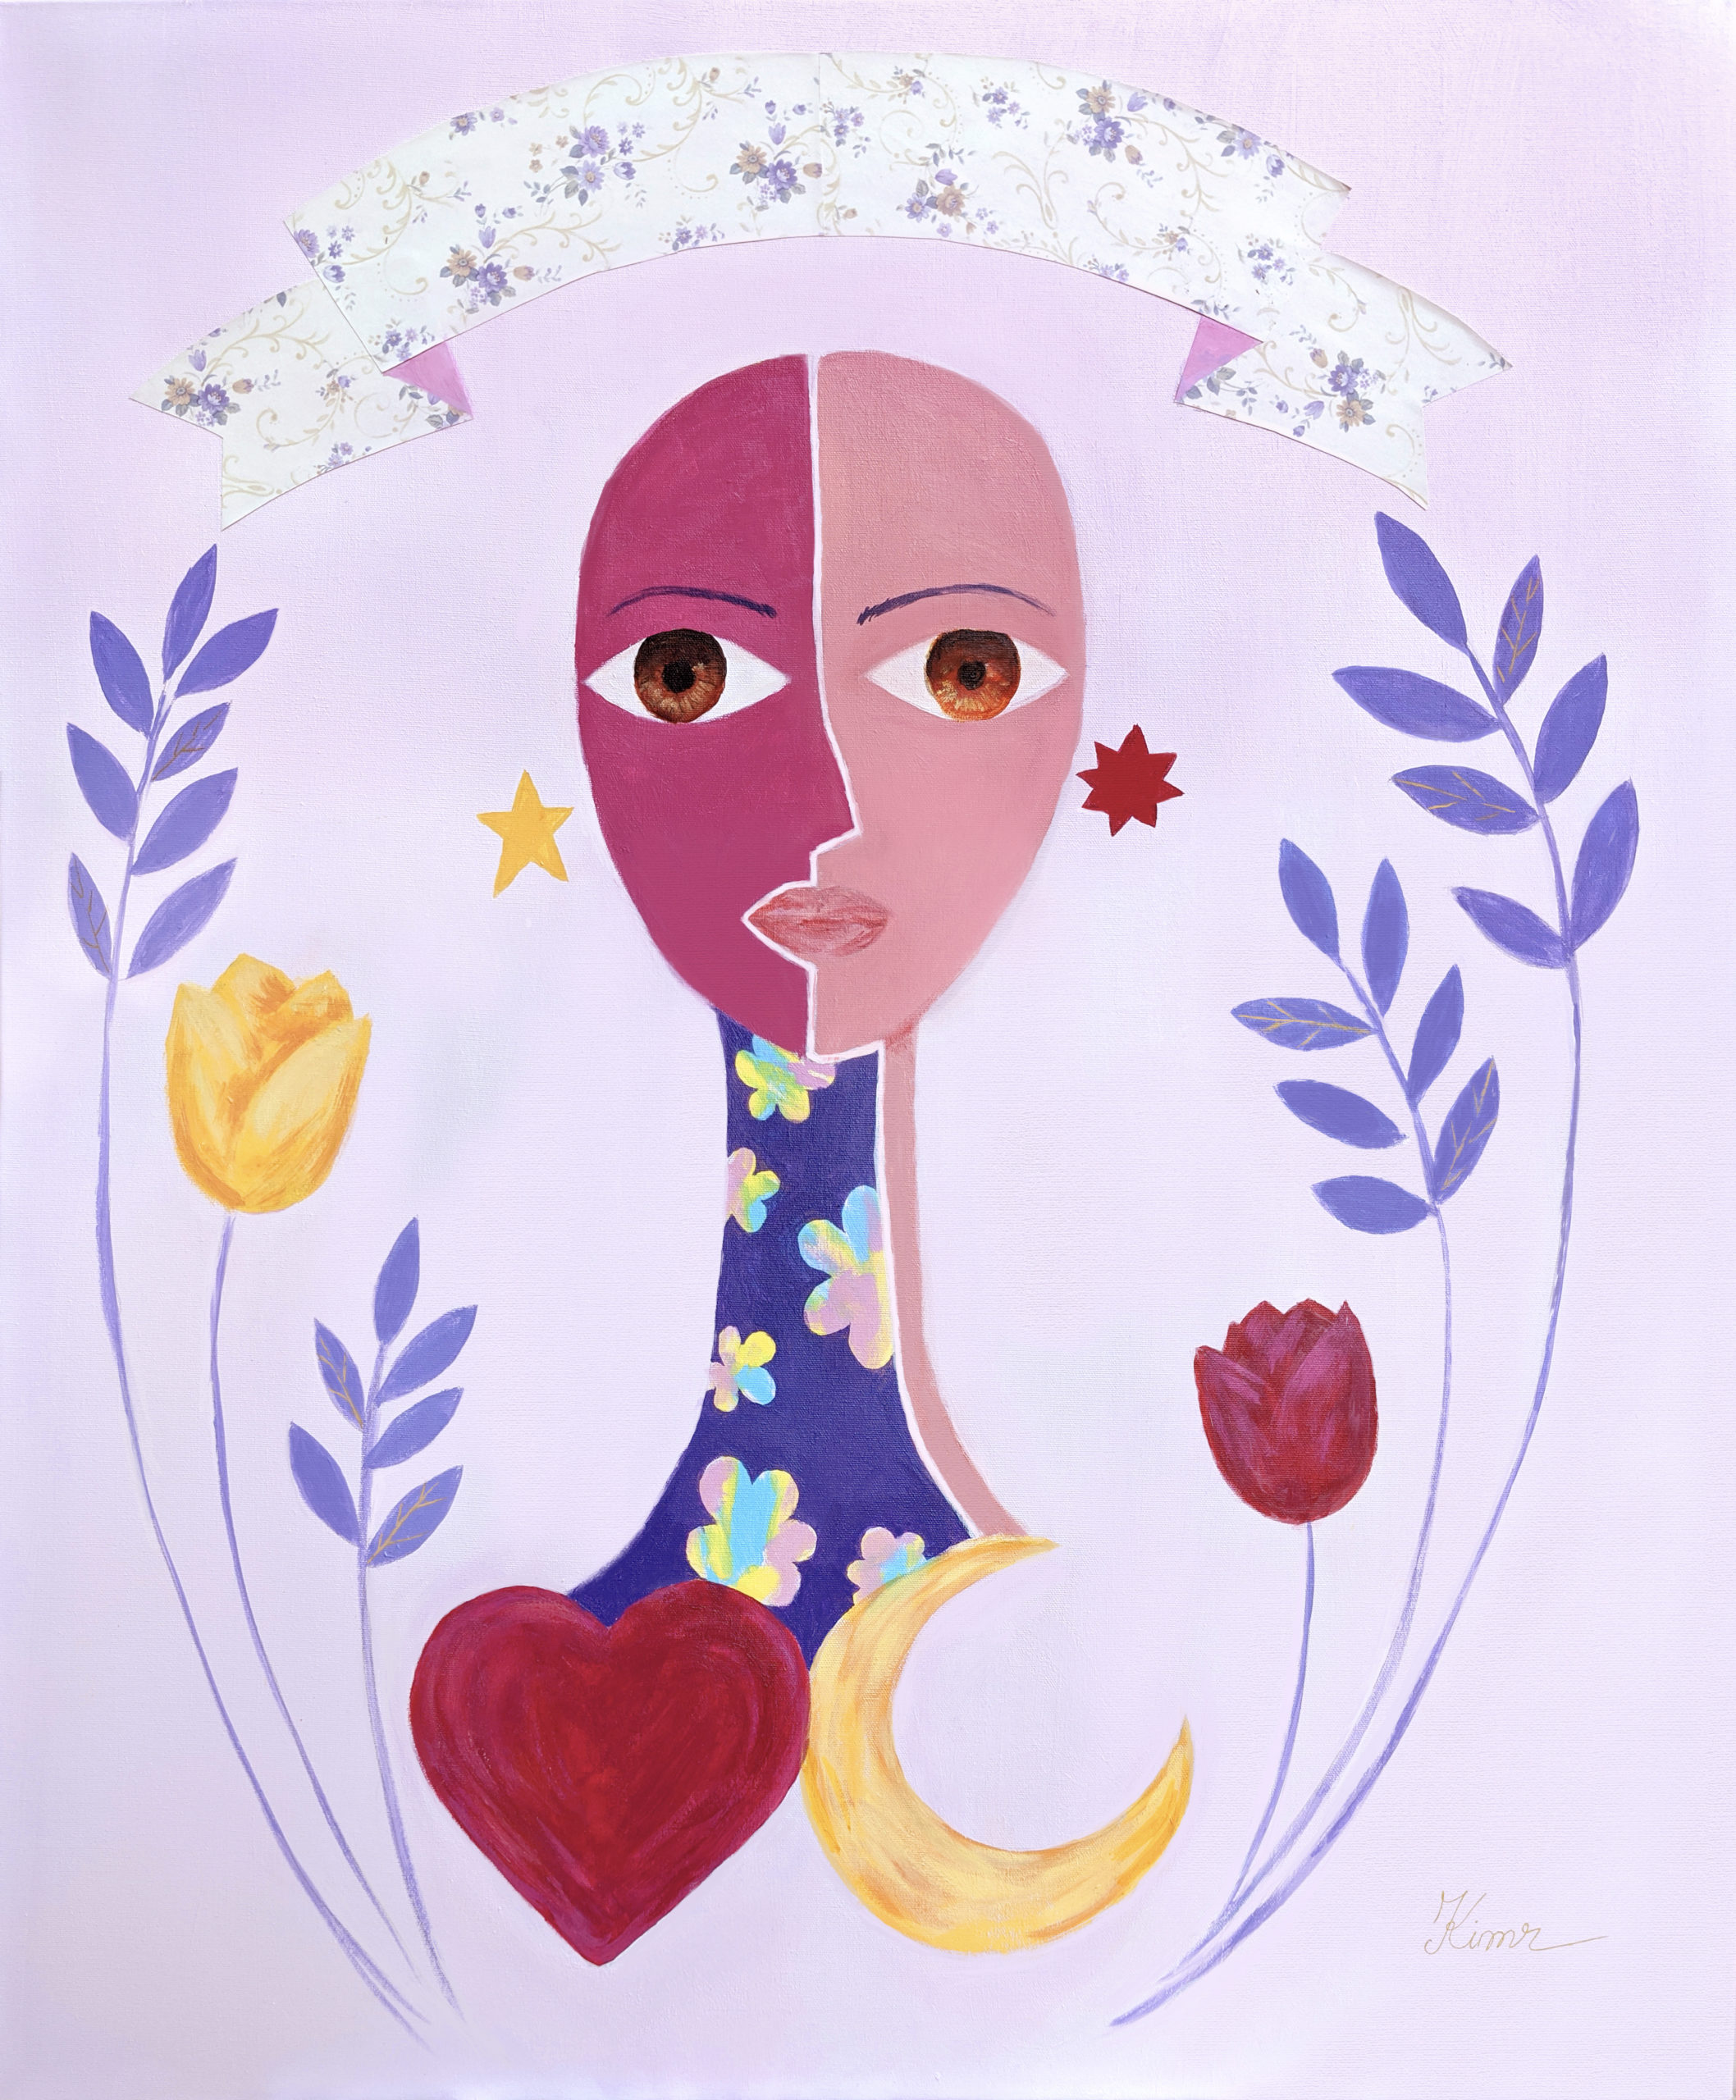 Girl's face and neck, bottom with moon and heart, surrounded by tulips, stars, and leaves